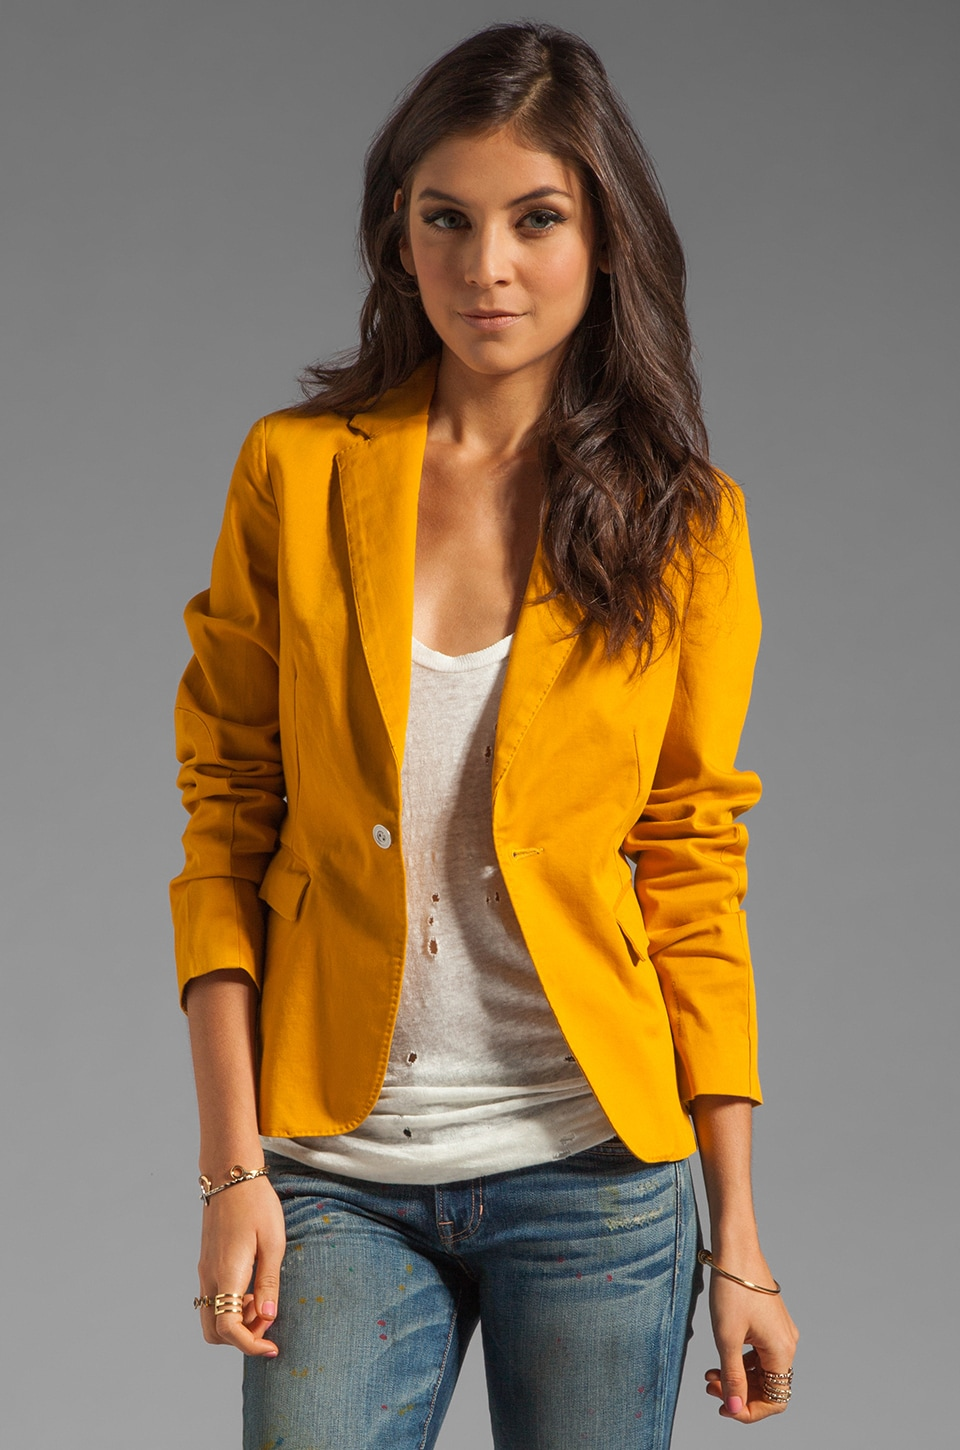 G-Star Olympia Blazer in Golden Yellow